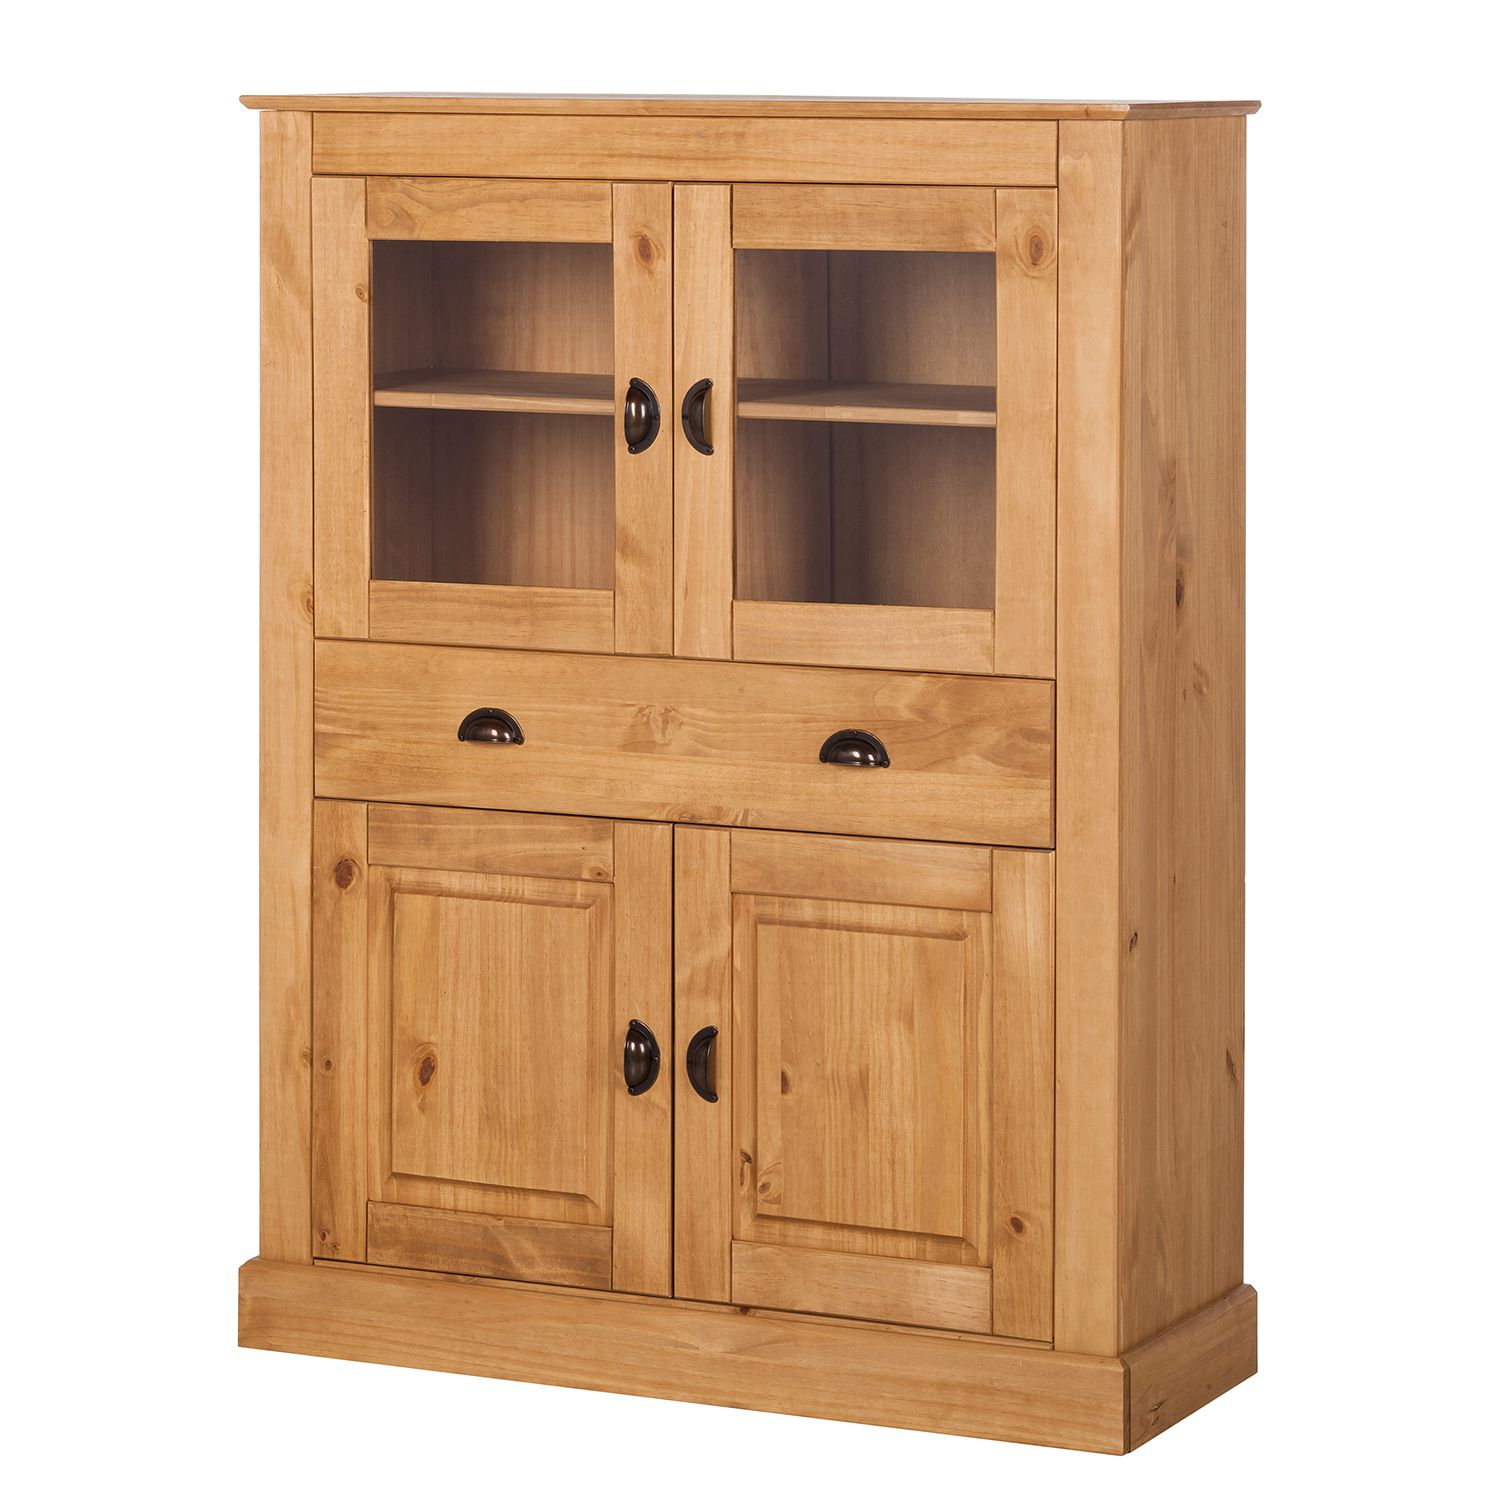 la redoute armoire pin massif redmond penderie prix et offres la redoute. Black Bedroom Furniture Sets. Home Design Ideas